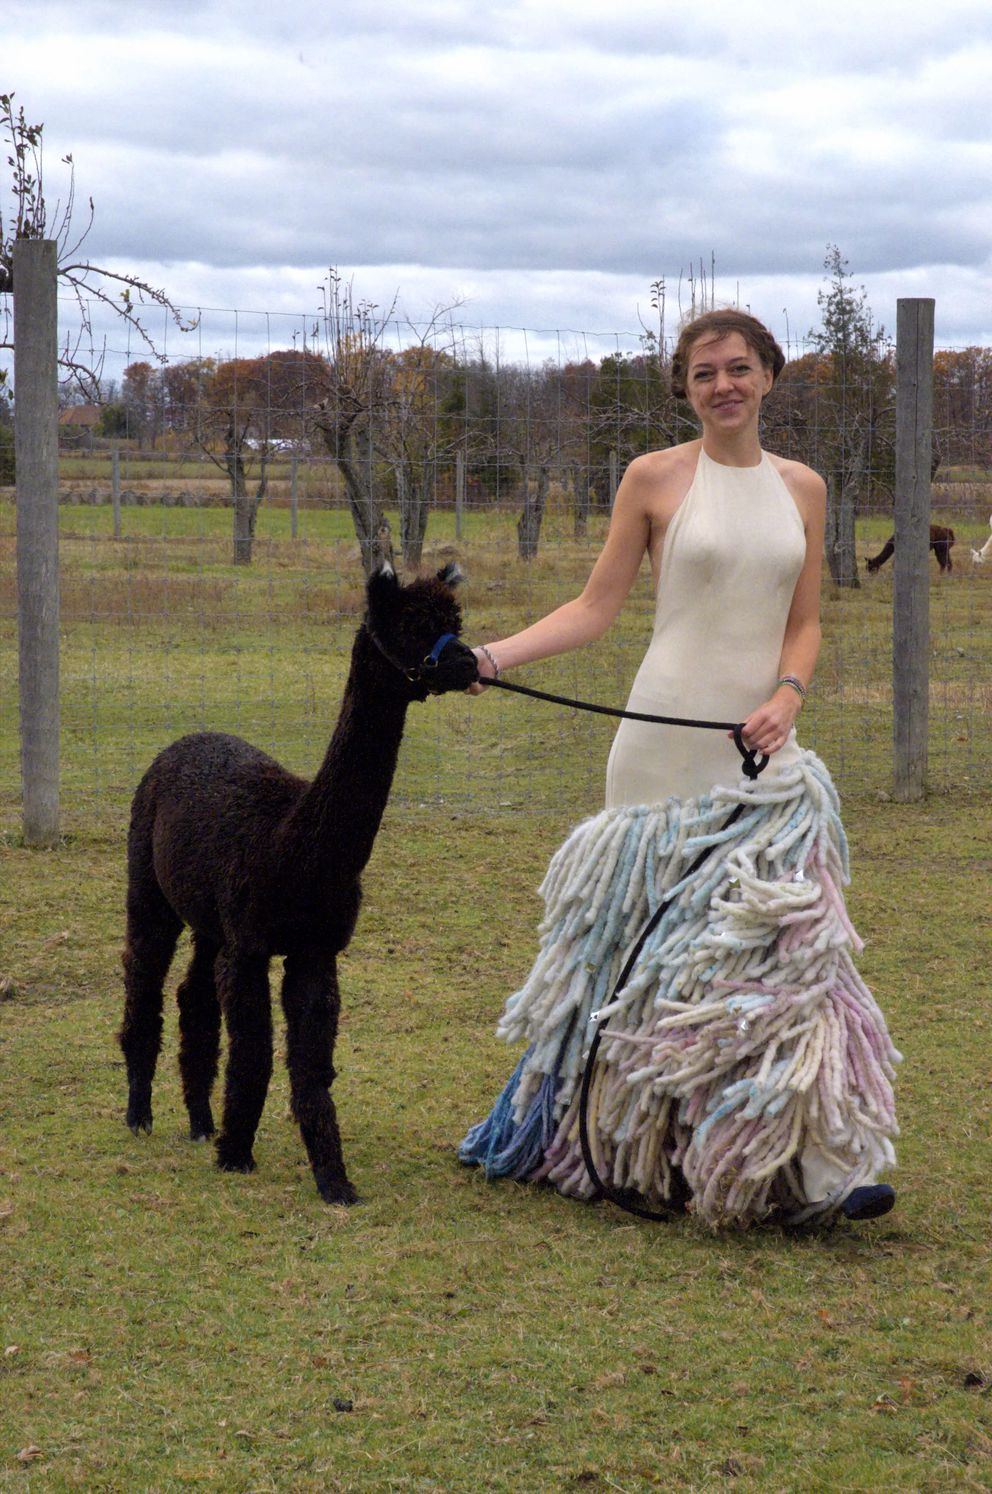 Toronto-based fashion designer Jacquelyn van Kampen models a dress she designed as part of her portfolio while applying for an artist-in-residency position in Haines Junction. Alpaca roving makes up the bottom portion of the gown. (Courtesy Jacquelyn van Kampen)